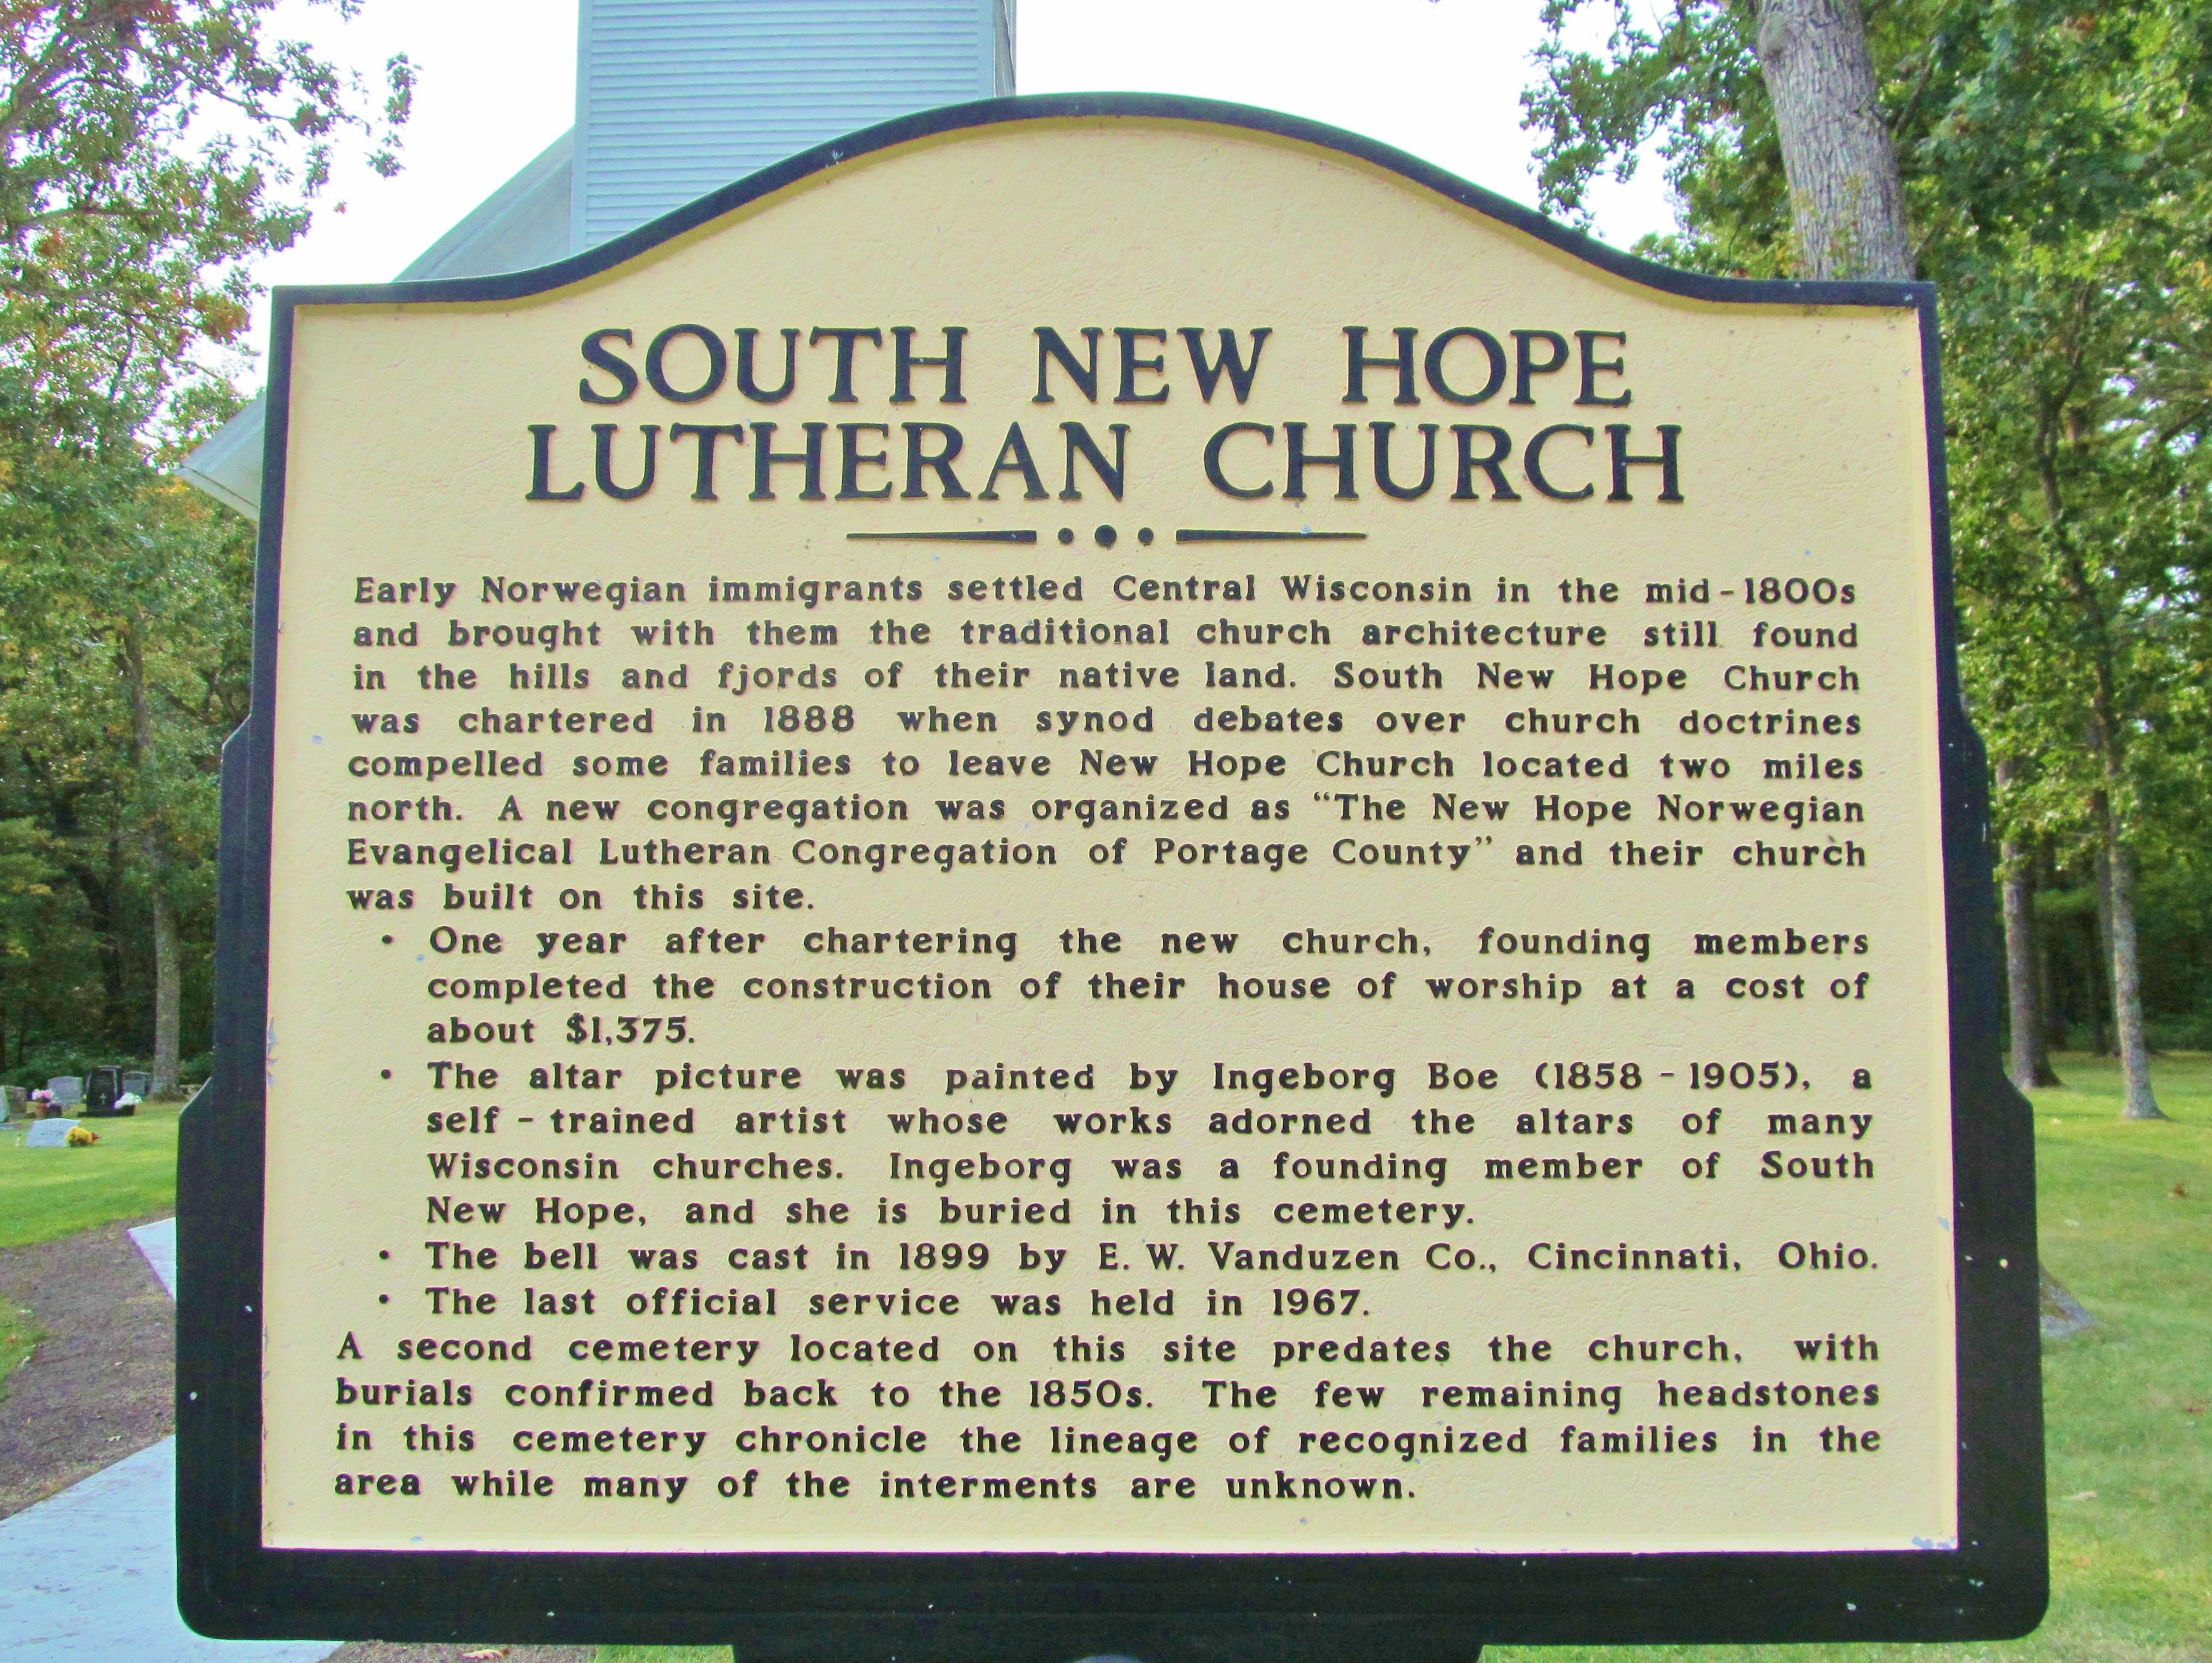 South New Hope Lutheran Church Marker